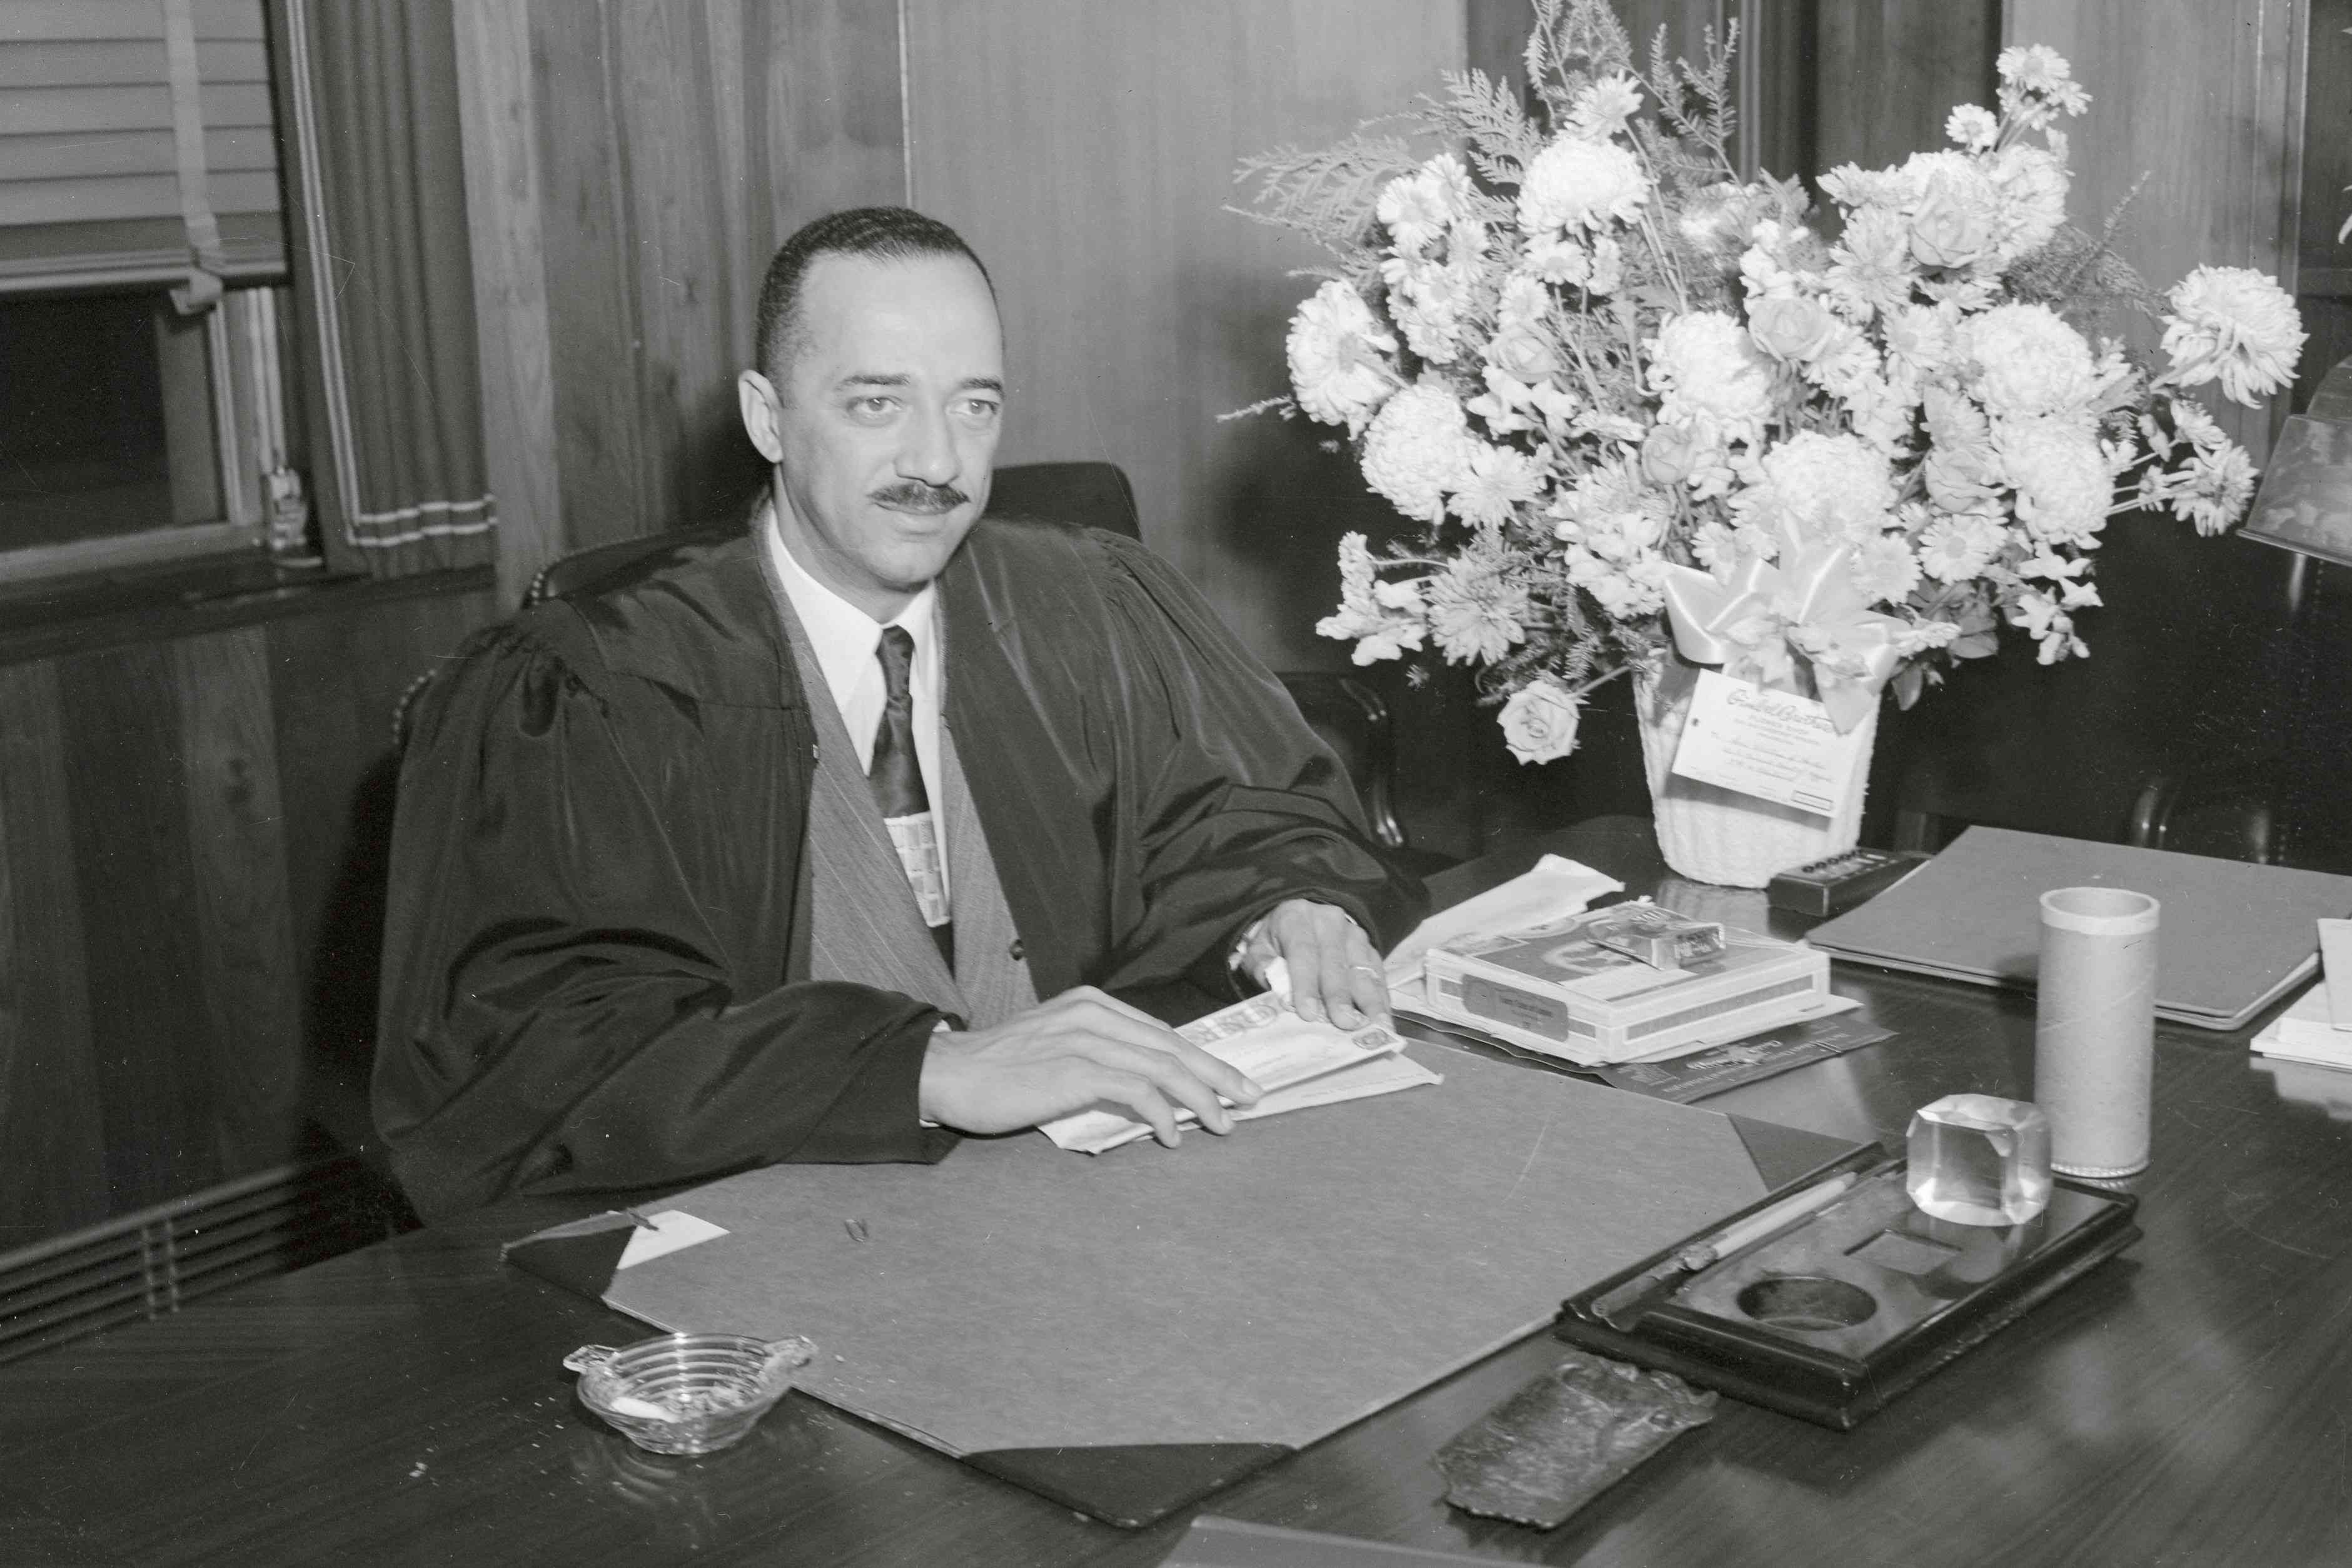 Judge William H. Hastie sits at his desk and works